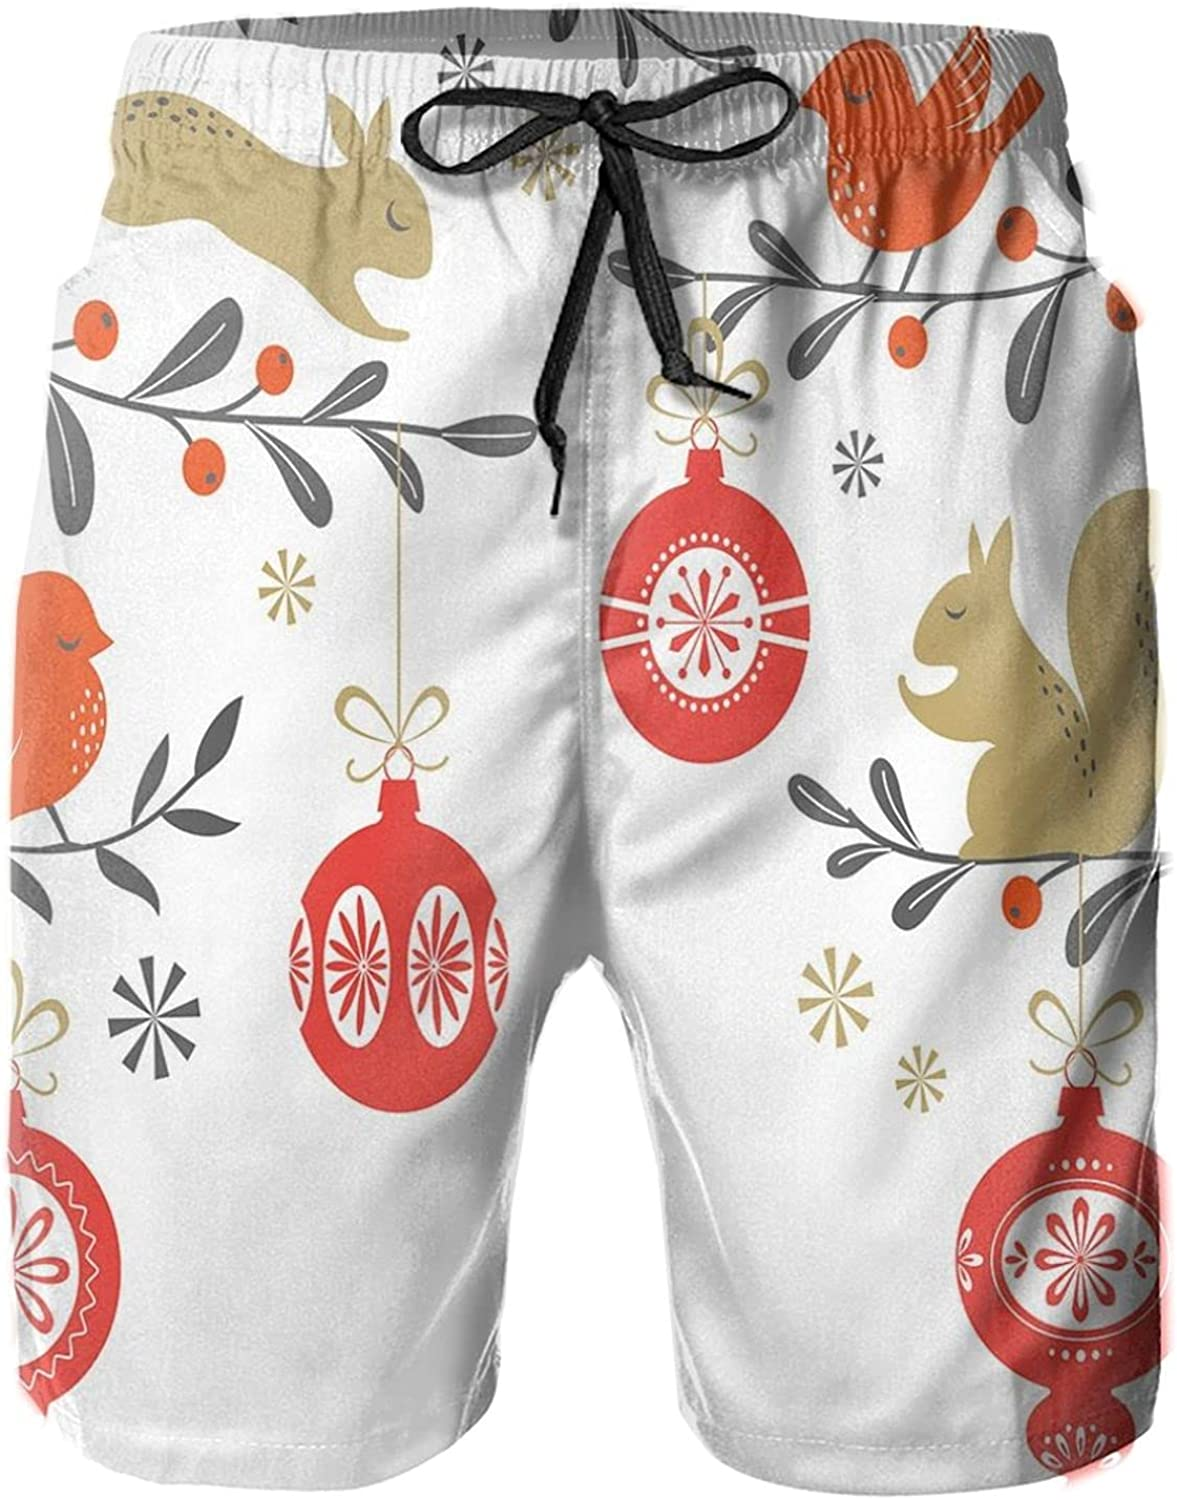 Winter Themed Holly Berry Branches with Squirrels and Red Bird Silhouettes Forest Mens Swim Shorts Casual Workout Short Pants Drawstring Beach Shorts,M